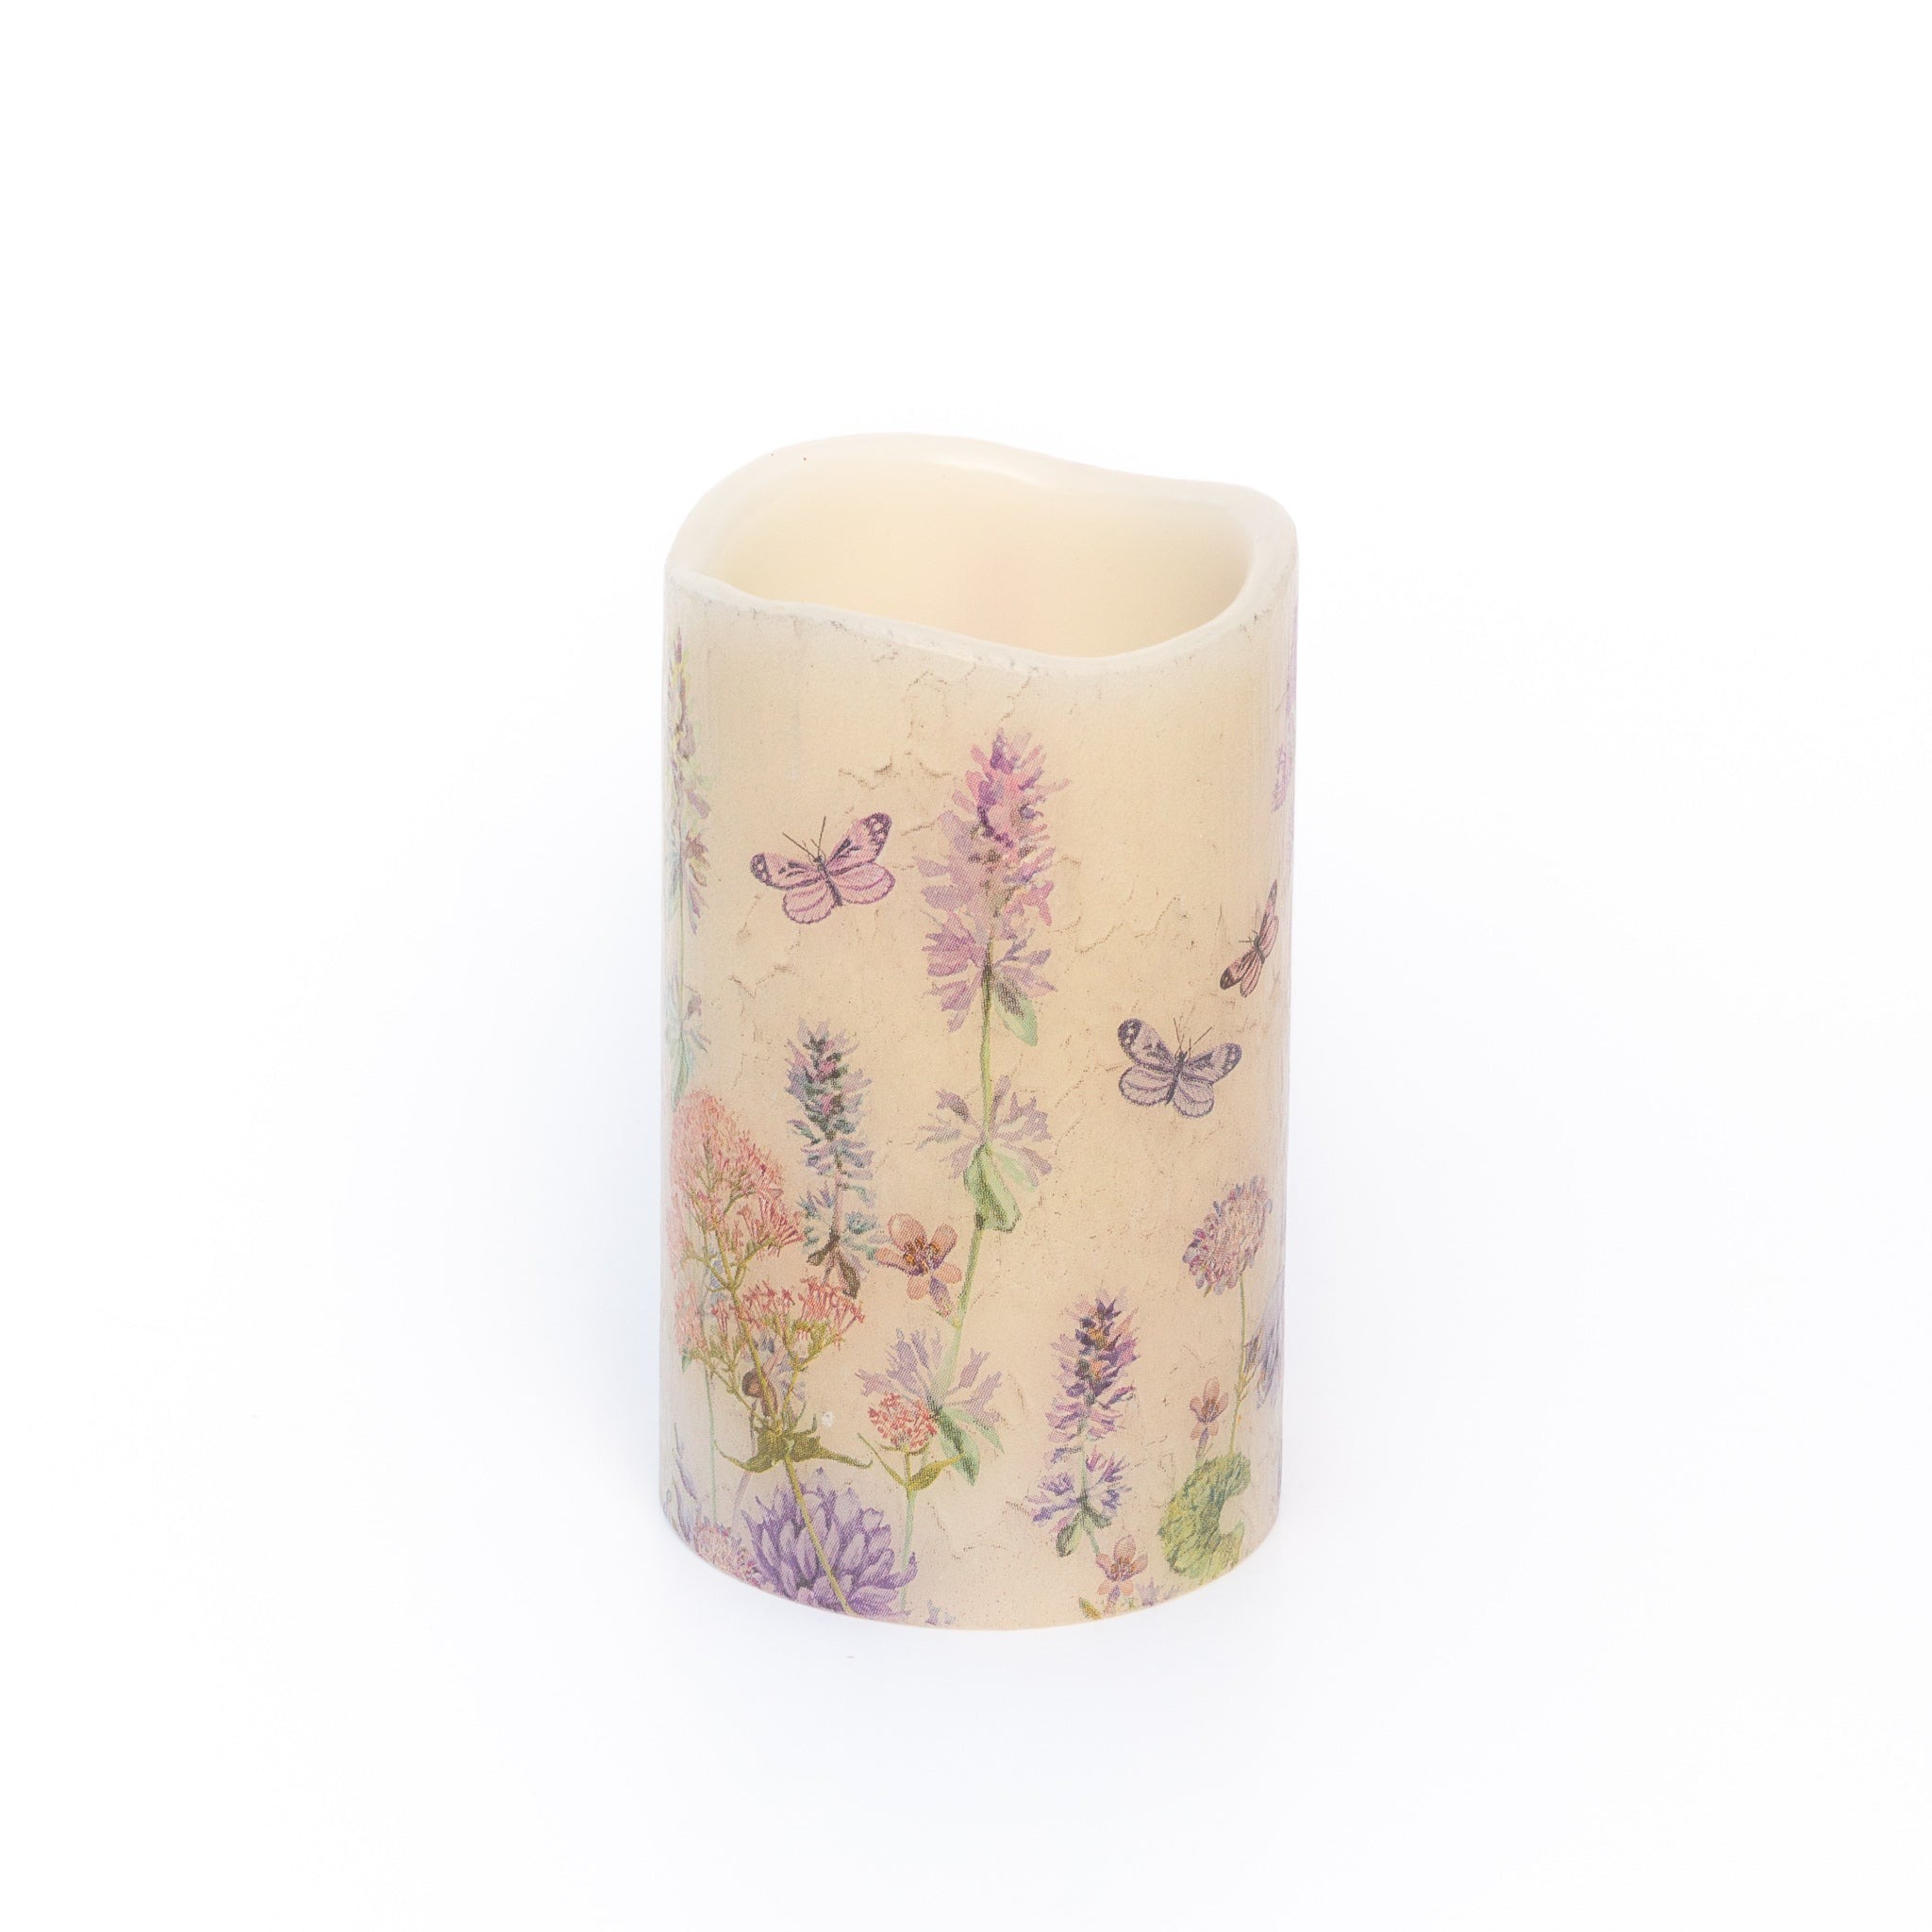 LED Wax Candles - Butterfly Garden Candle - The Sage Haven